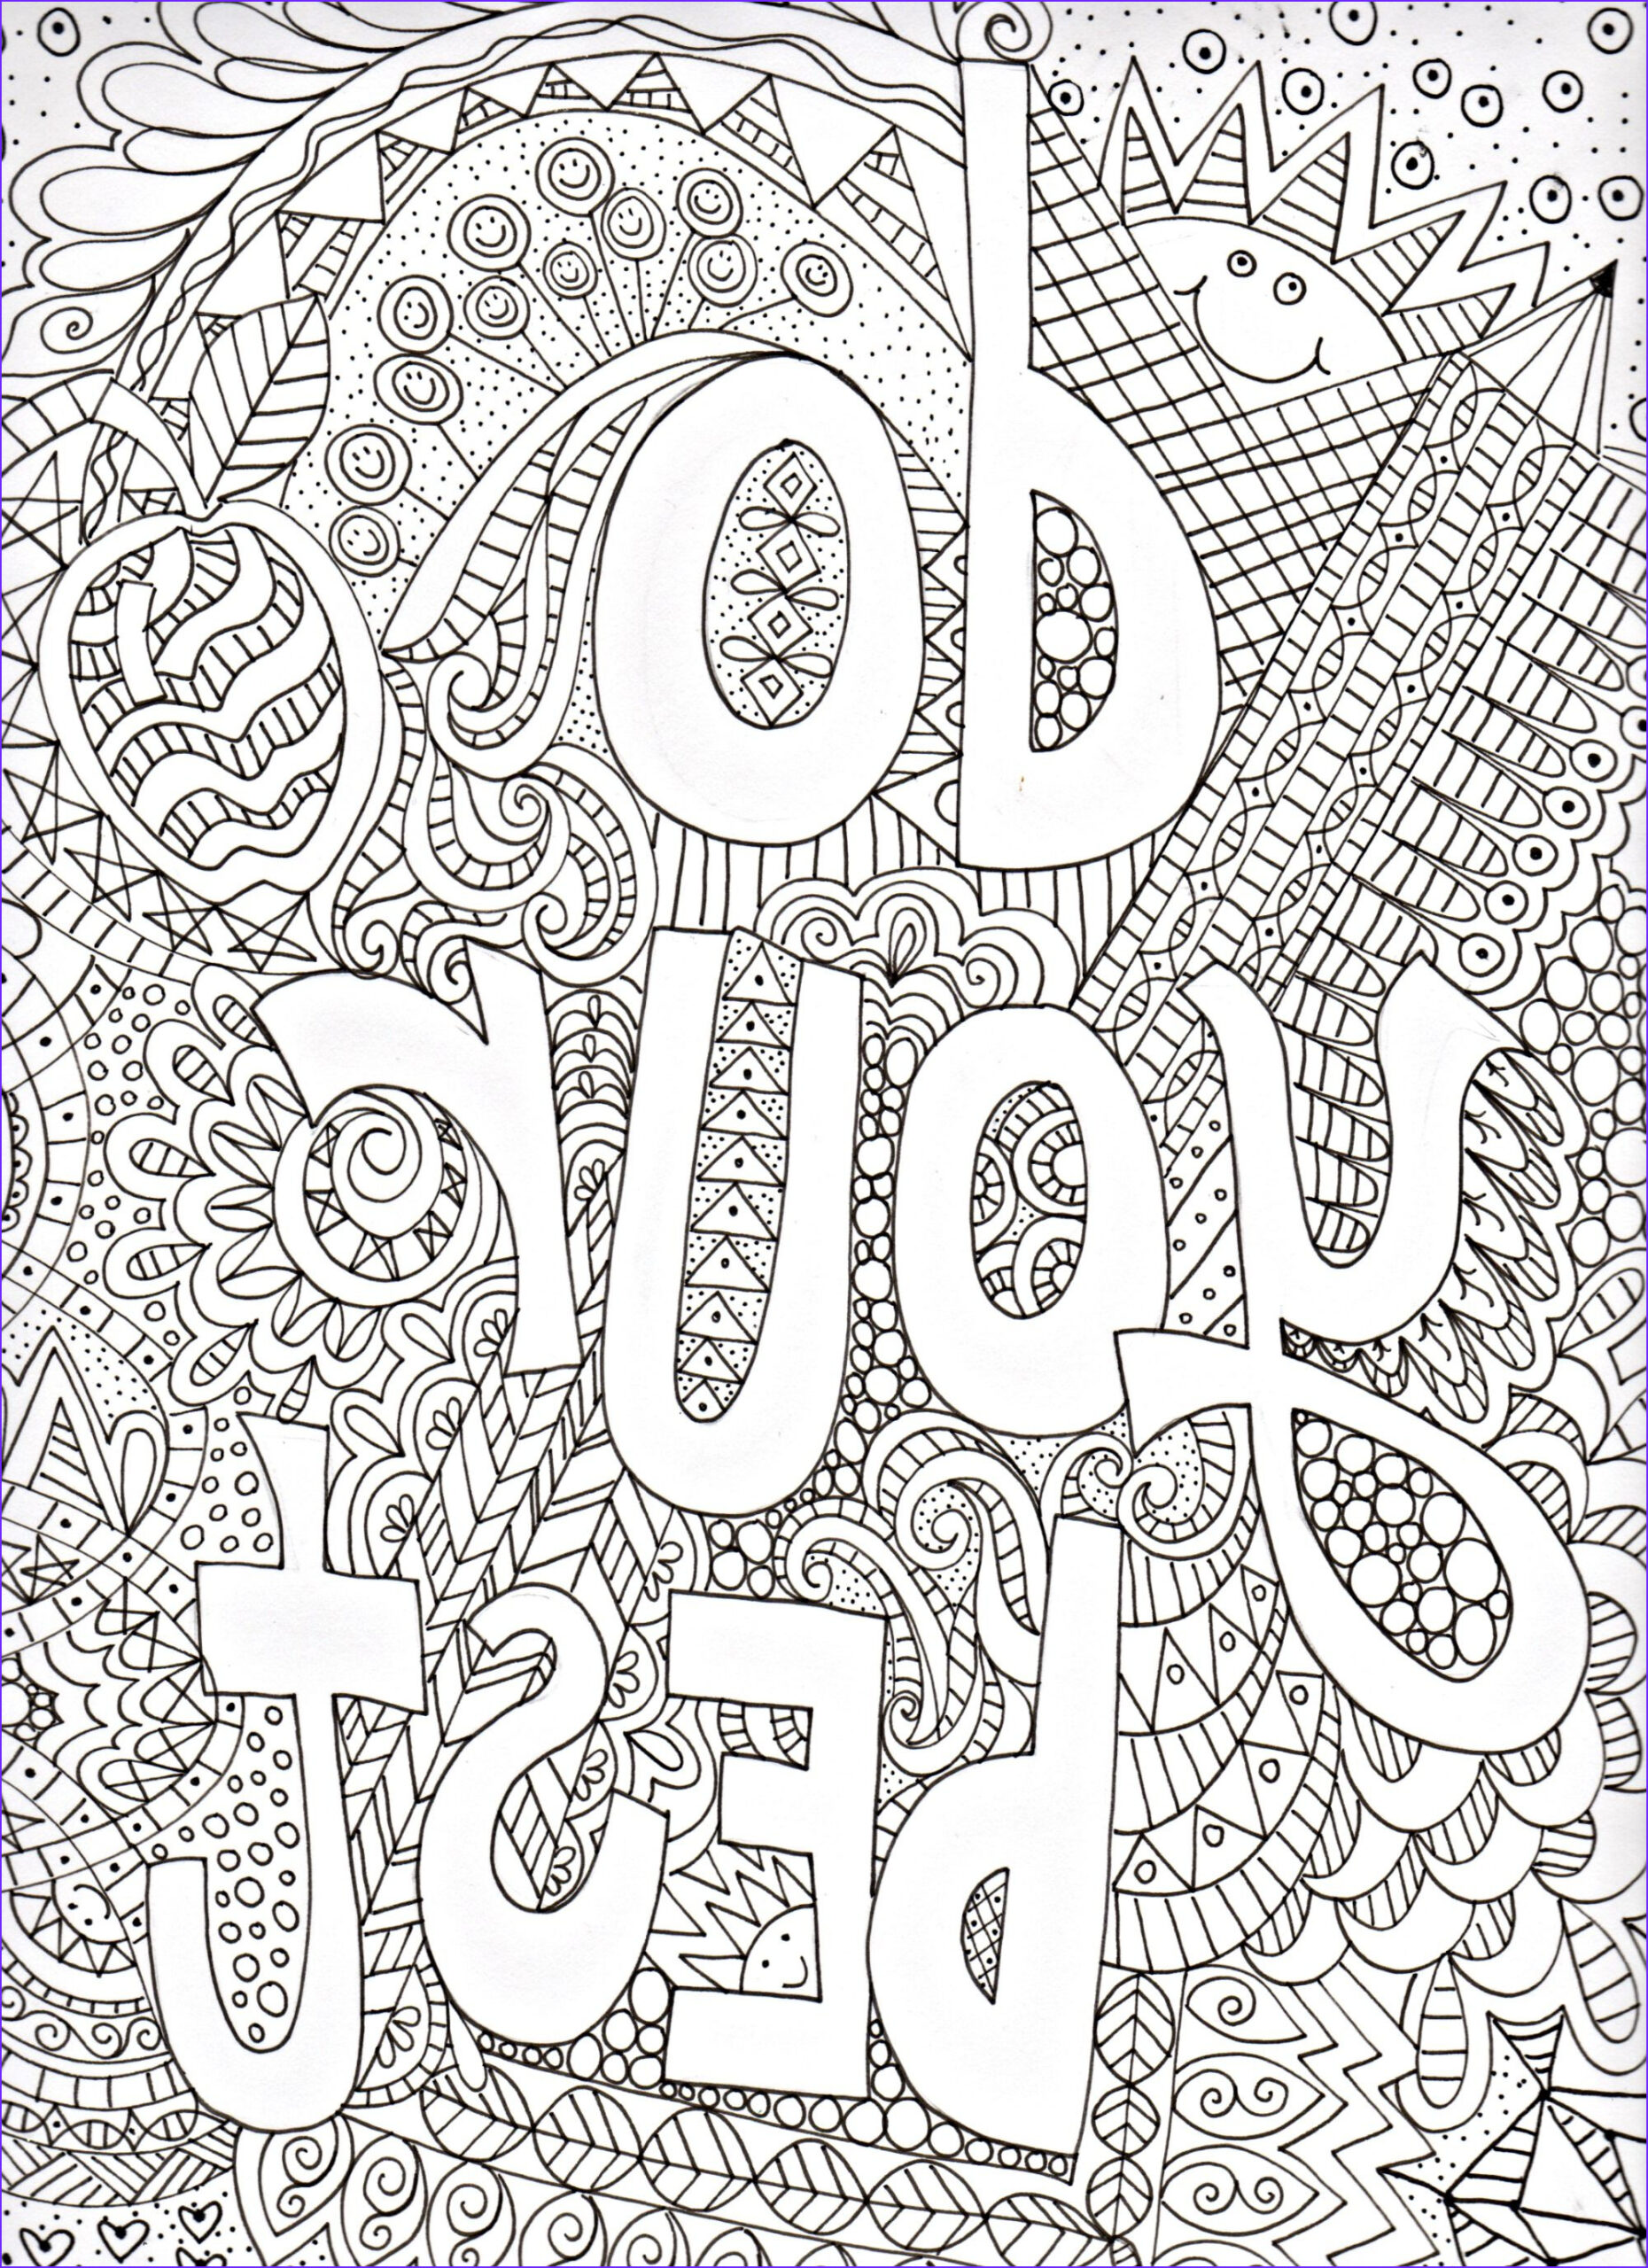 Cool Adult Coloring Pages Cool Collection Get Out Those Colored Pencils and Have some Doodle Fun